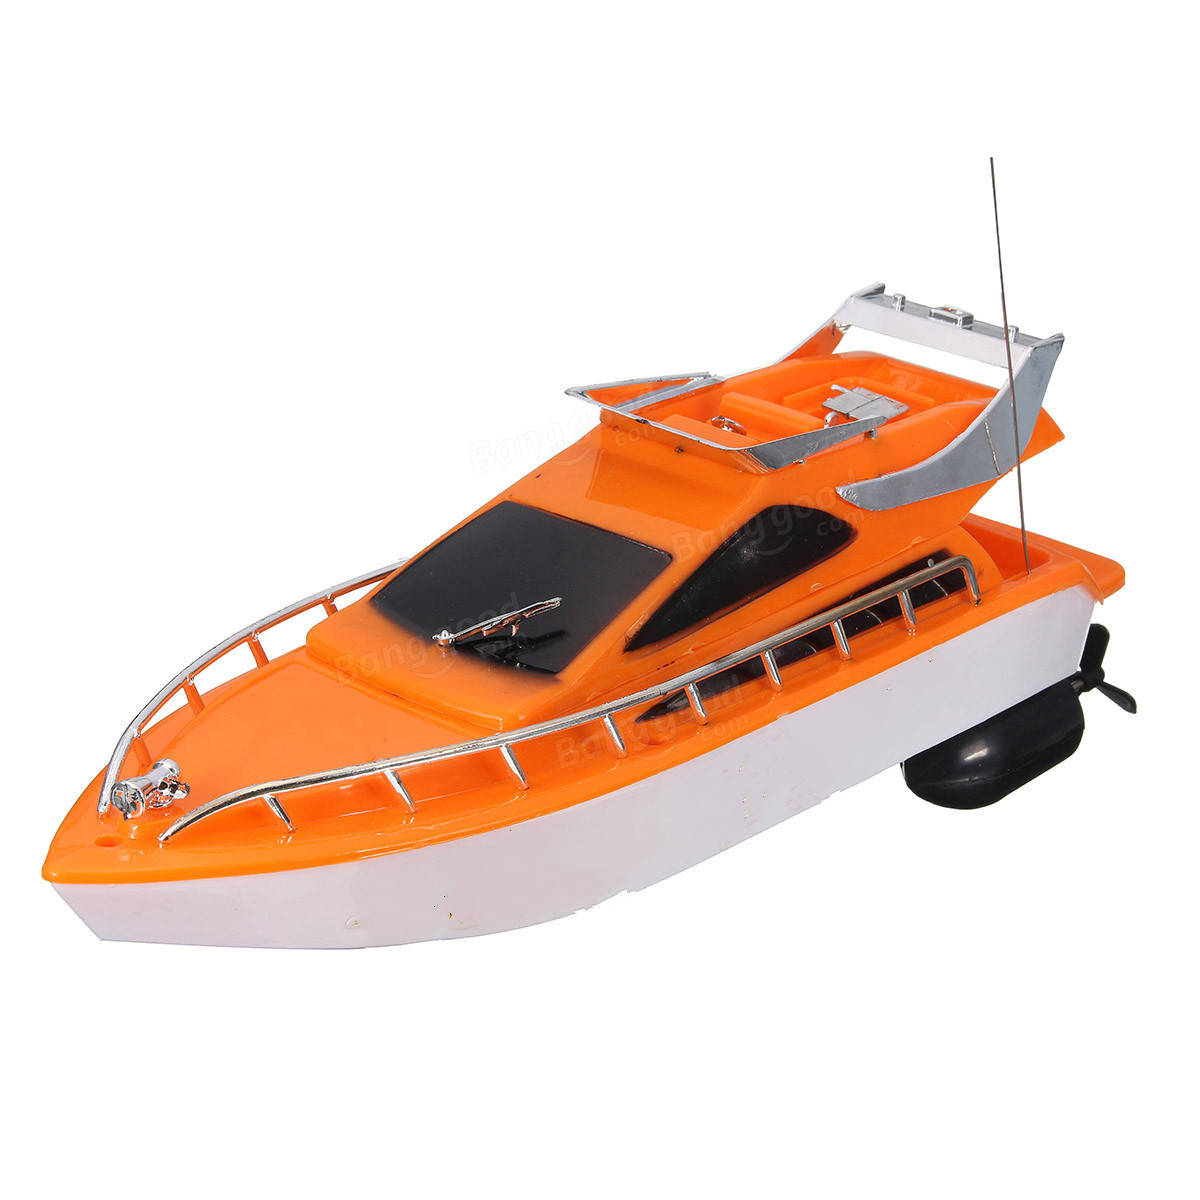 motor boat remote control with 26x7 5x9cm Orange Plastic Electric Remote Control Kid Chirdren Toy Speed Boat P 1104283 on 544040 Flats Boat Ranger 184 Ghost 2011 A besides Elvira Adult Medium in addition Inflatable Boat Sd230 in addition 26x7 5x9cm Orange Plastic Electric Remote Control Kid Chirdren Toy Speed Boat P 1104283 in addition China Motorized Bed Electric Actuator Linear DC 12V Or 24V Wireless Remote Control Linear Actuator.